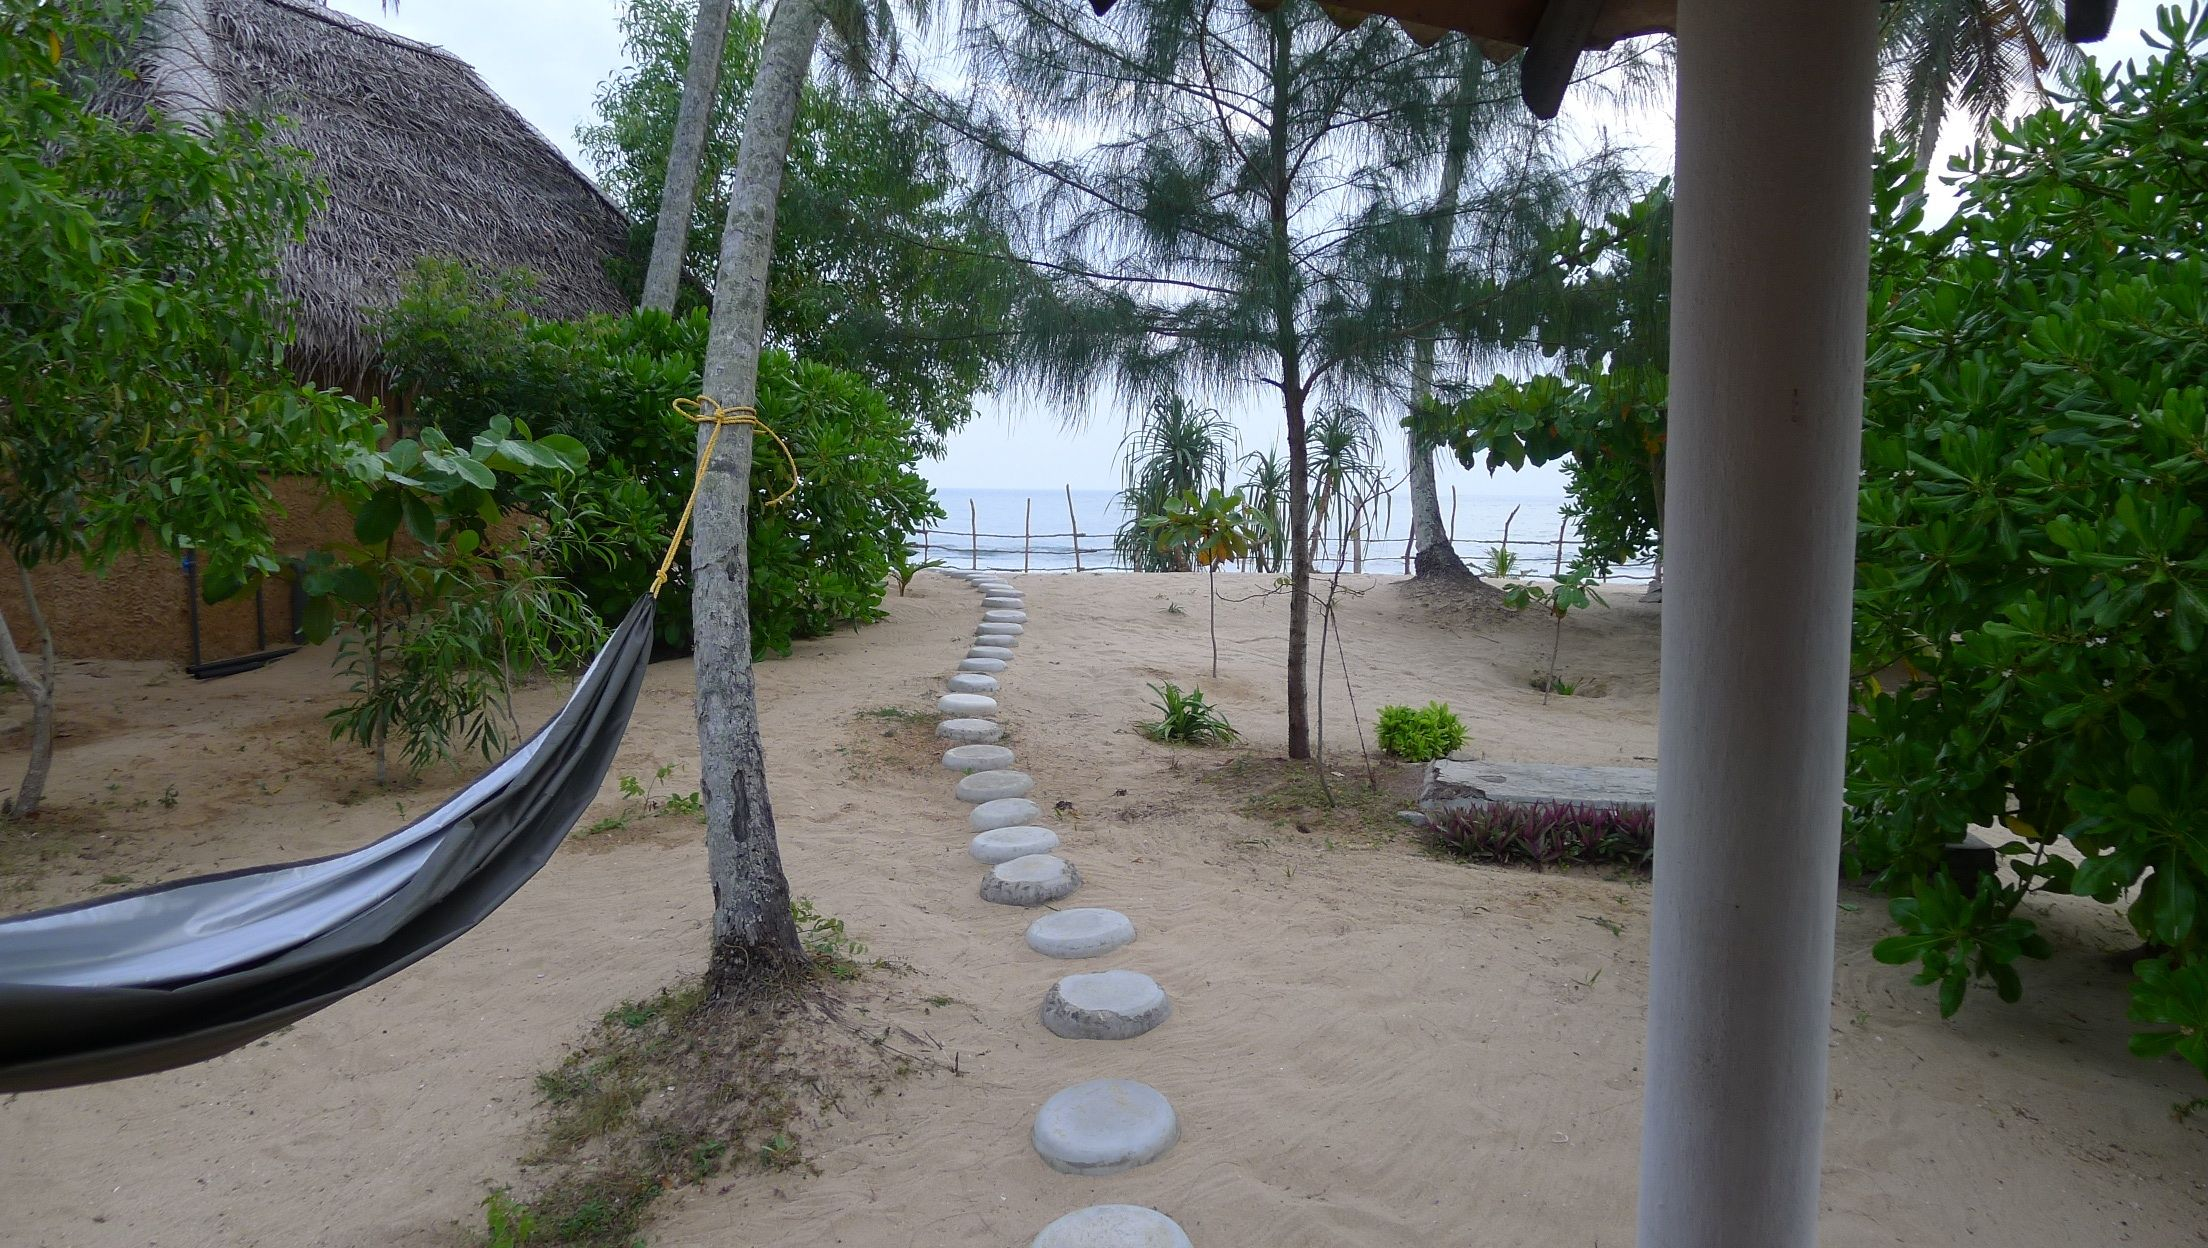 From the room to the beach, Tangalle, Sri Lanka